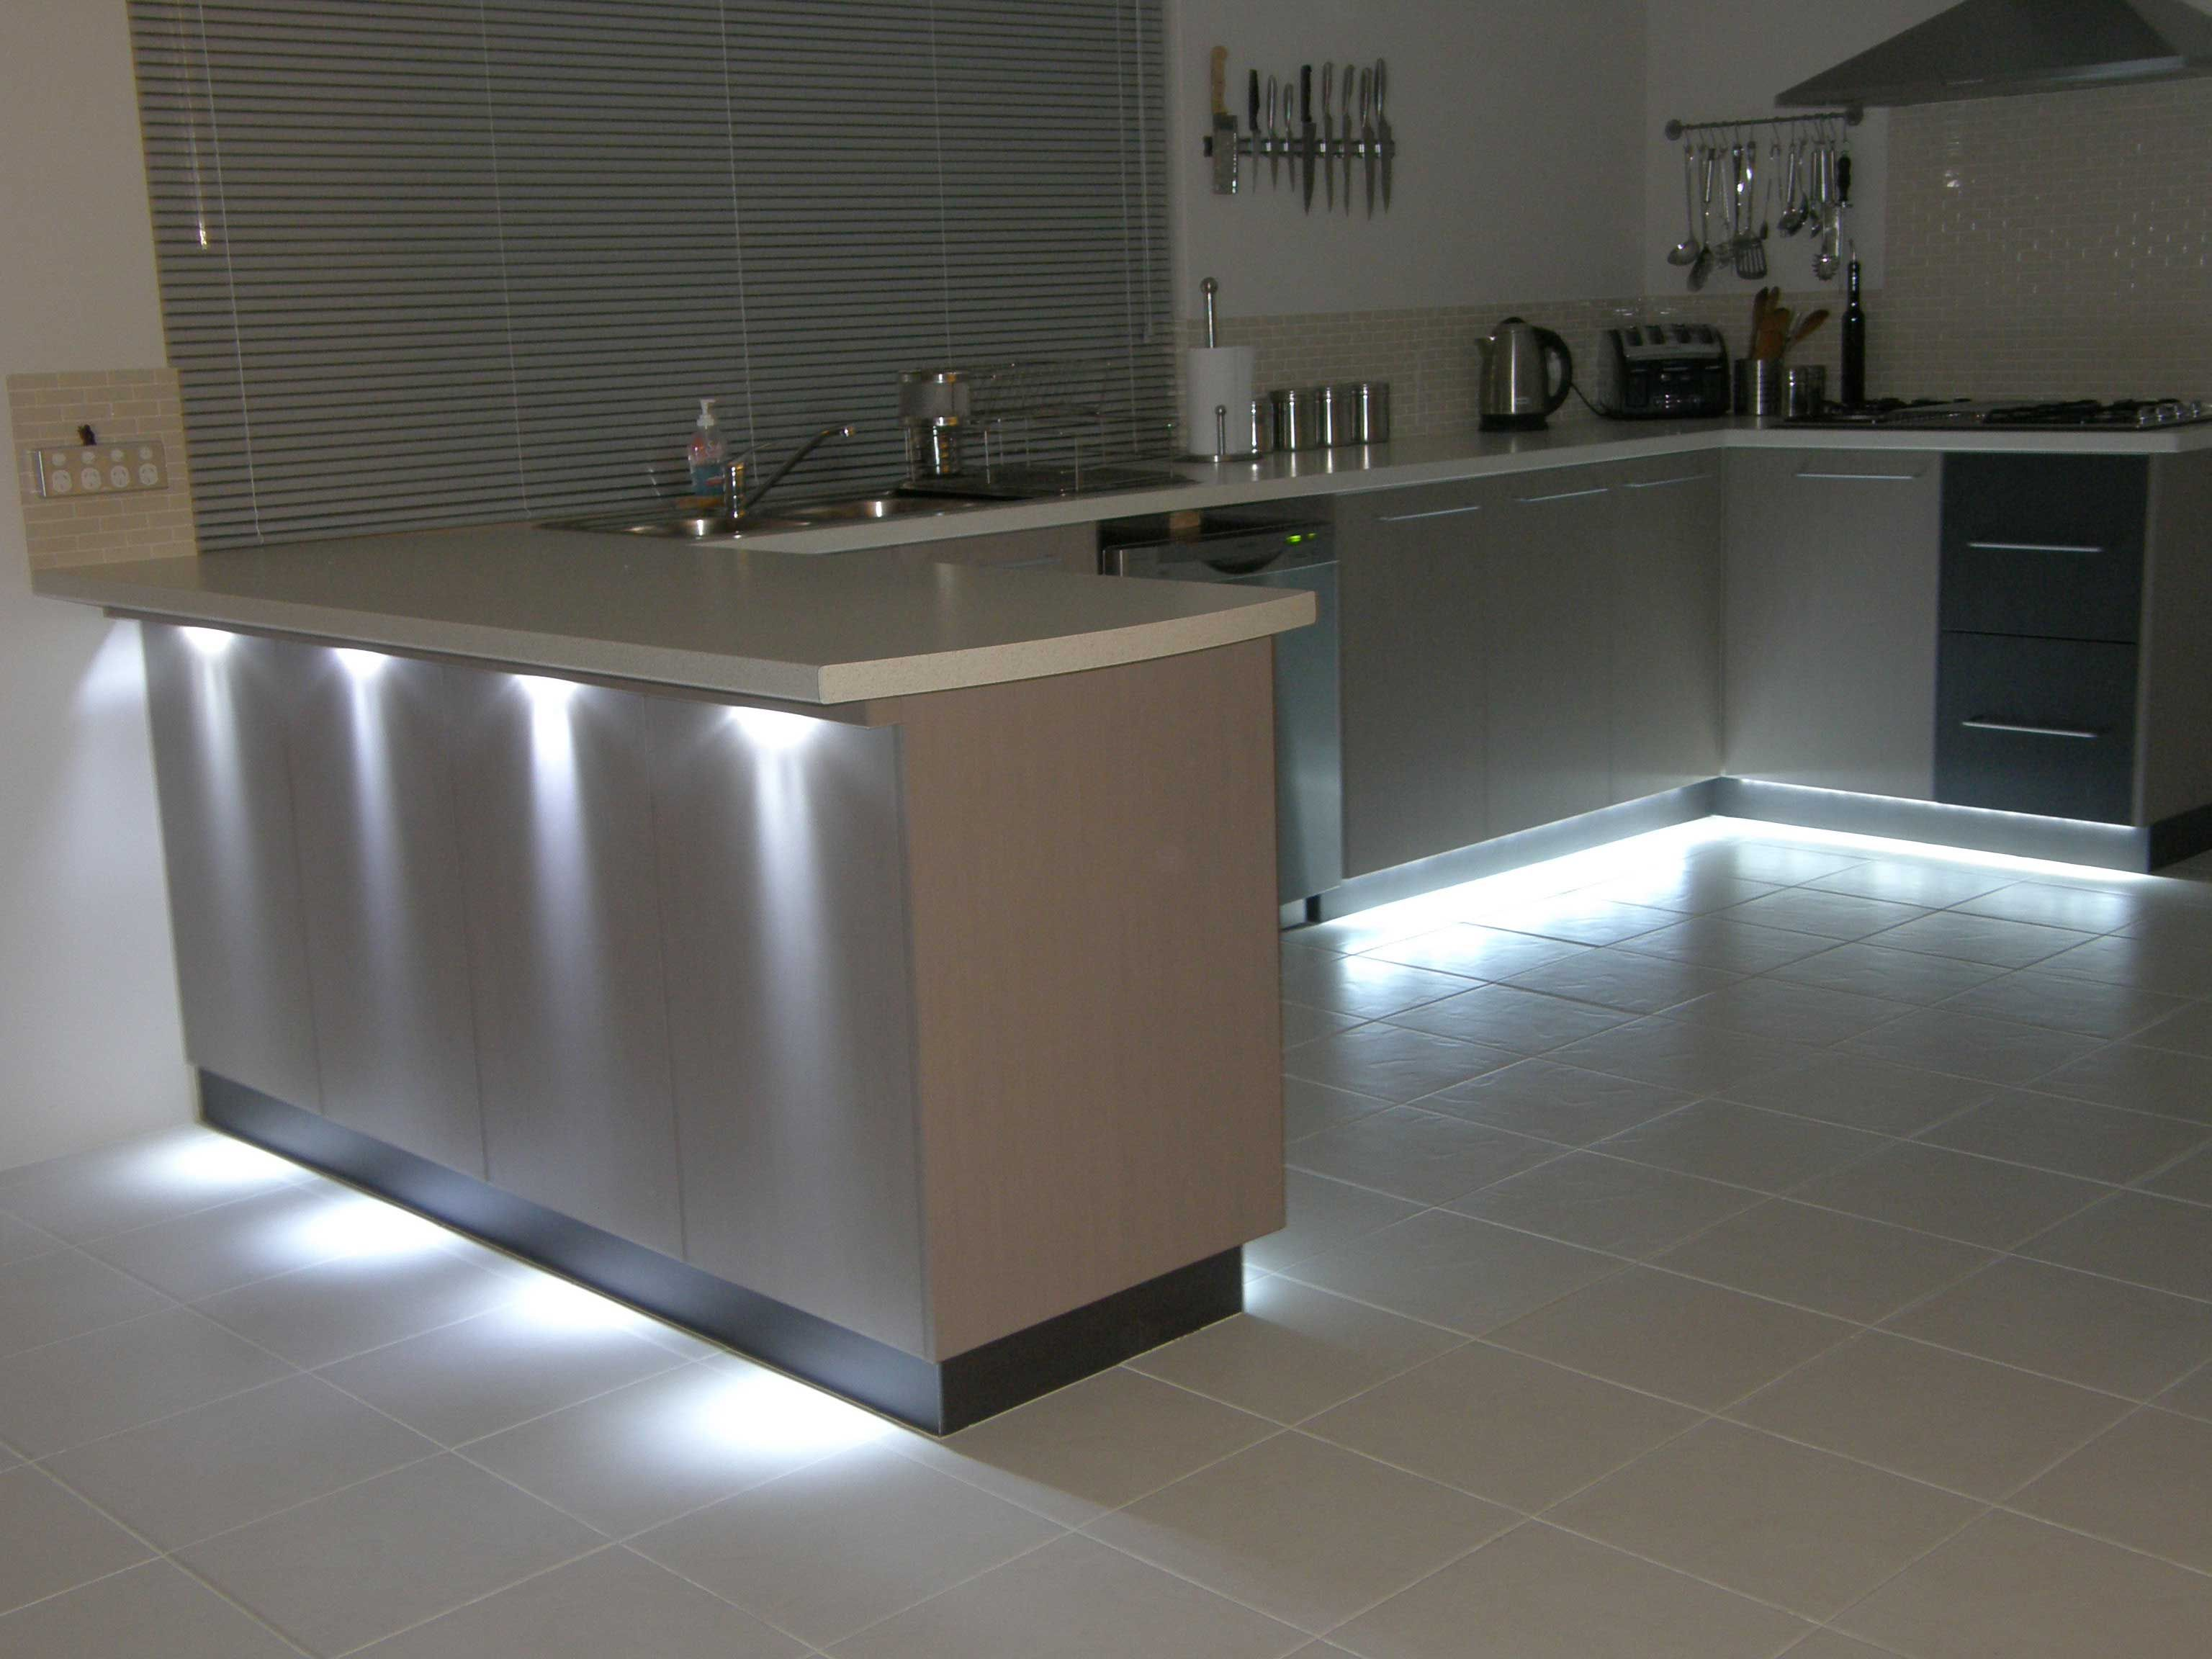 Kitchen Lighting Ideas And Inspiration Are Essential When You 39 Re Designing Your Kitchen Under Cabinet Lighting Kitchen Led Lighting Light Kitchen Cabinets